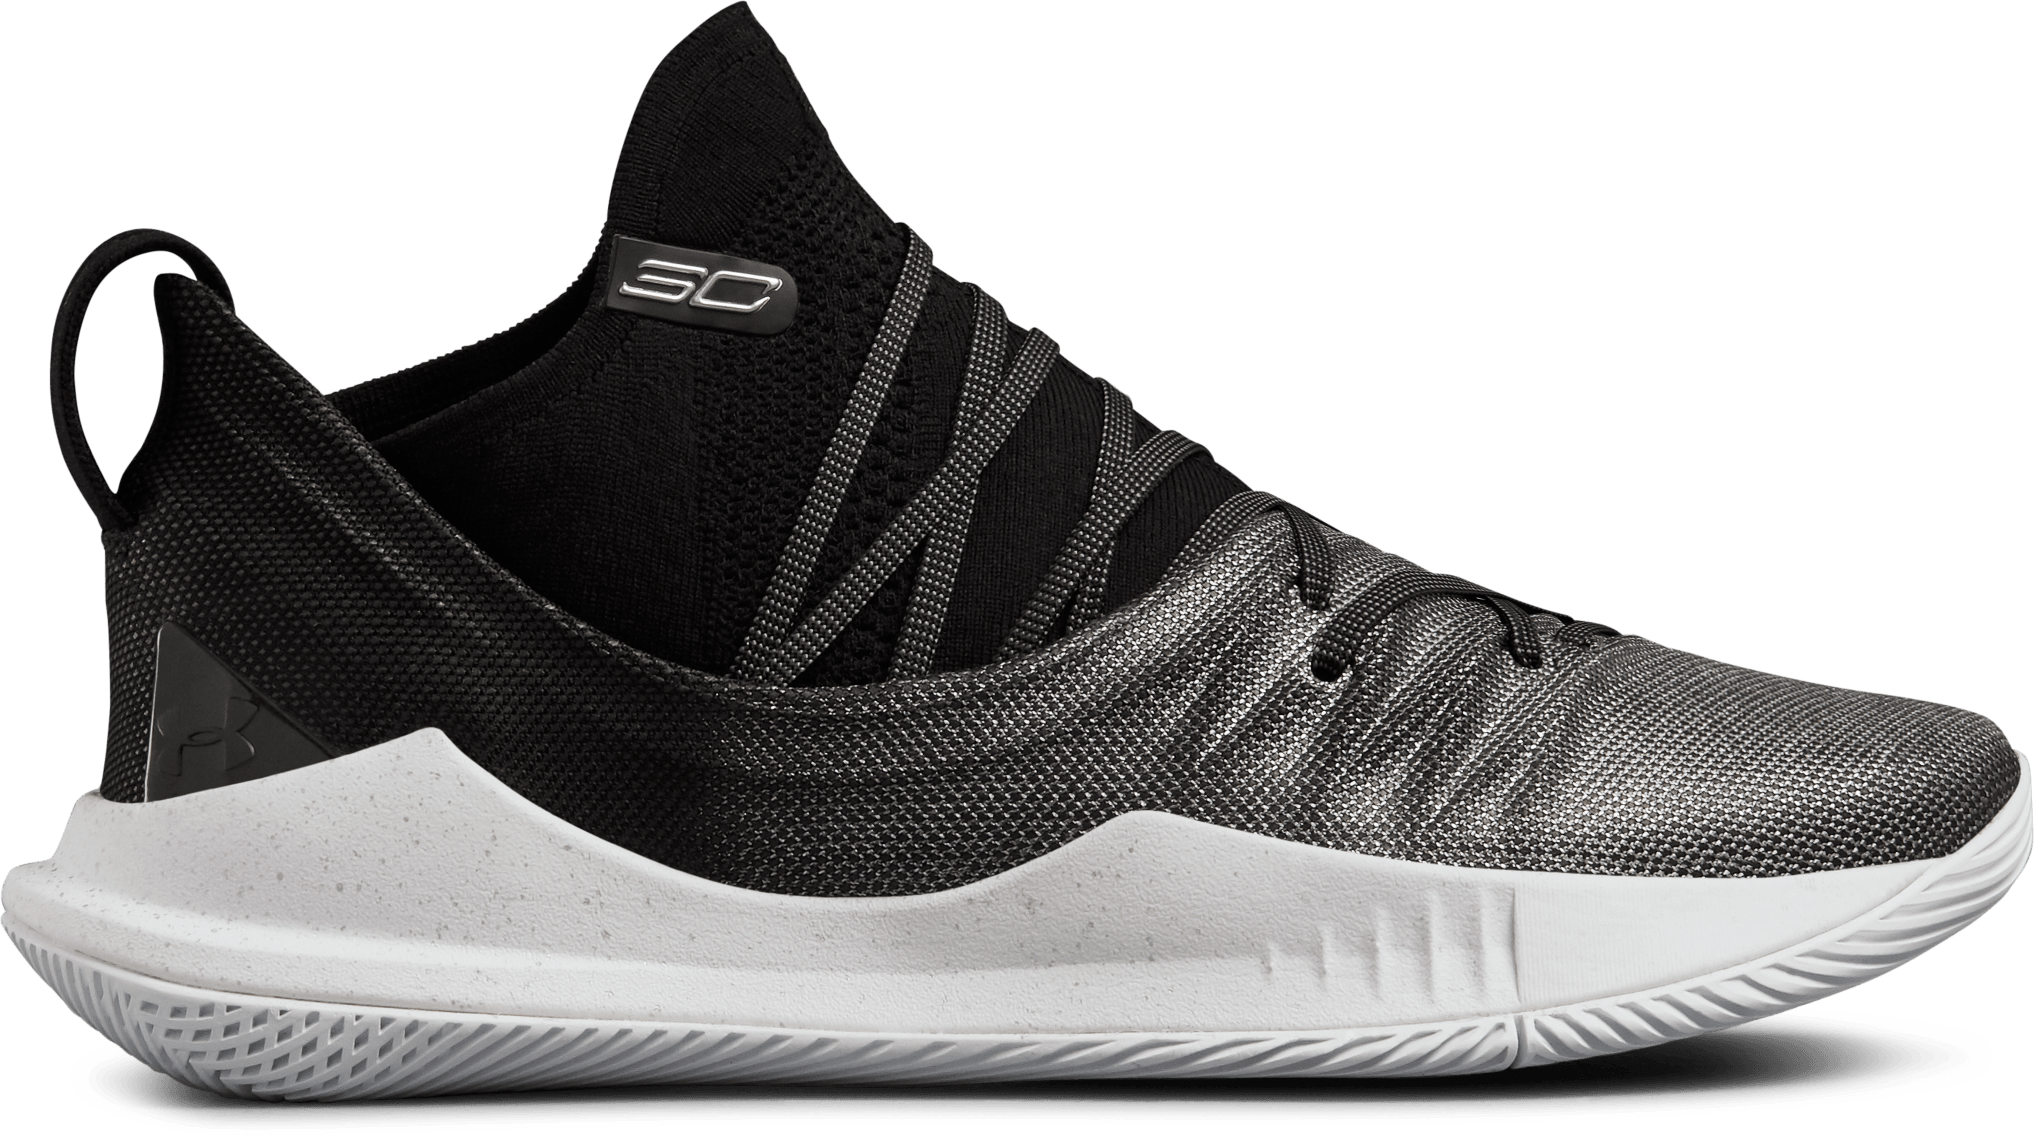 Under Armour Curry 5 Under Armour Curry 5 Performance Review